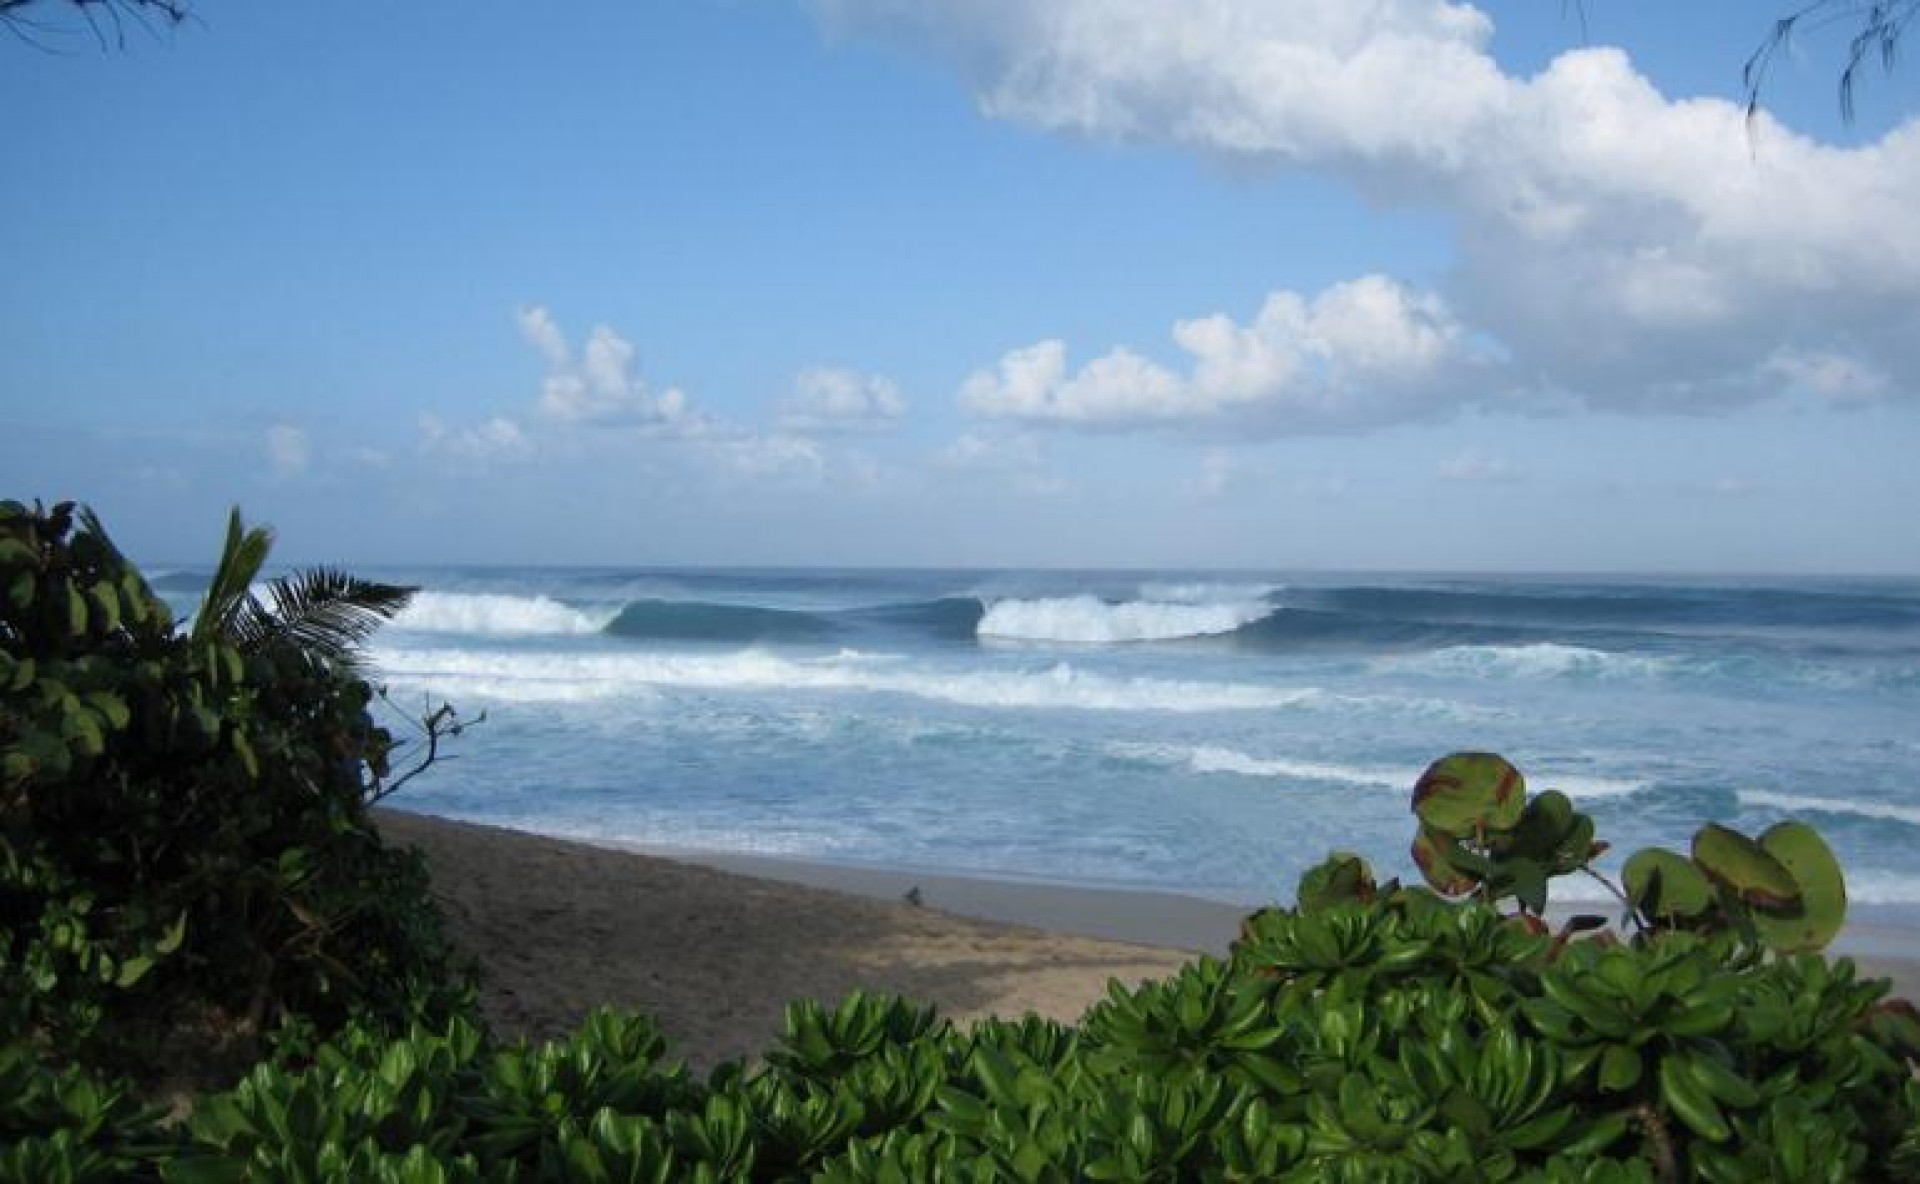 David Ortiz's photo of Pipeline & Backdoor